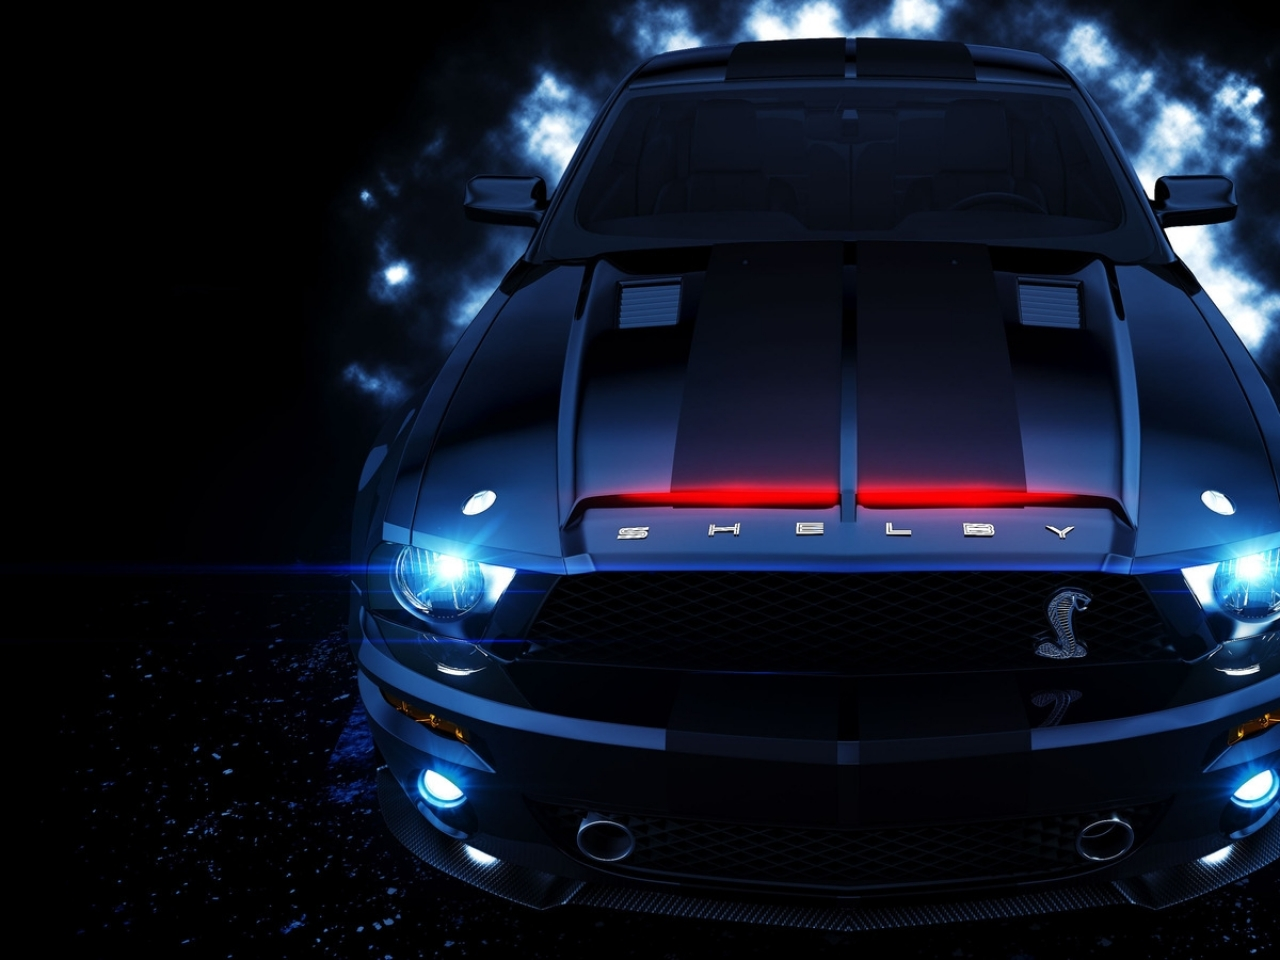 Download Wallpapers Download 1280x960 cars ford mustang knight rider 1280x960